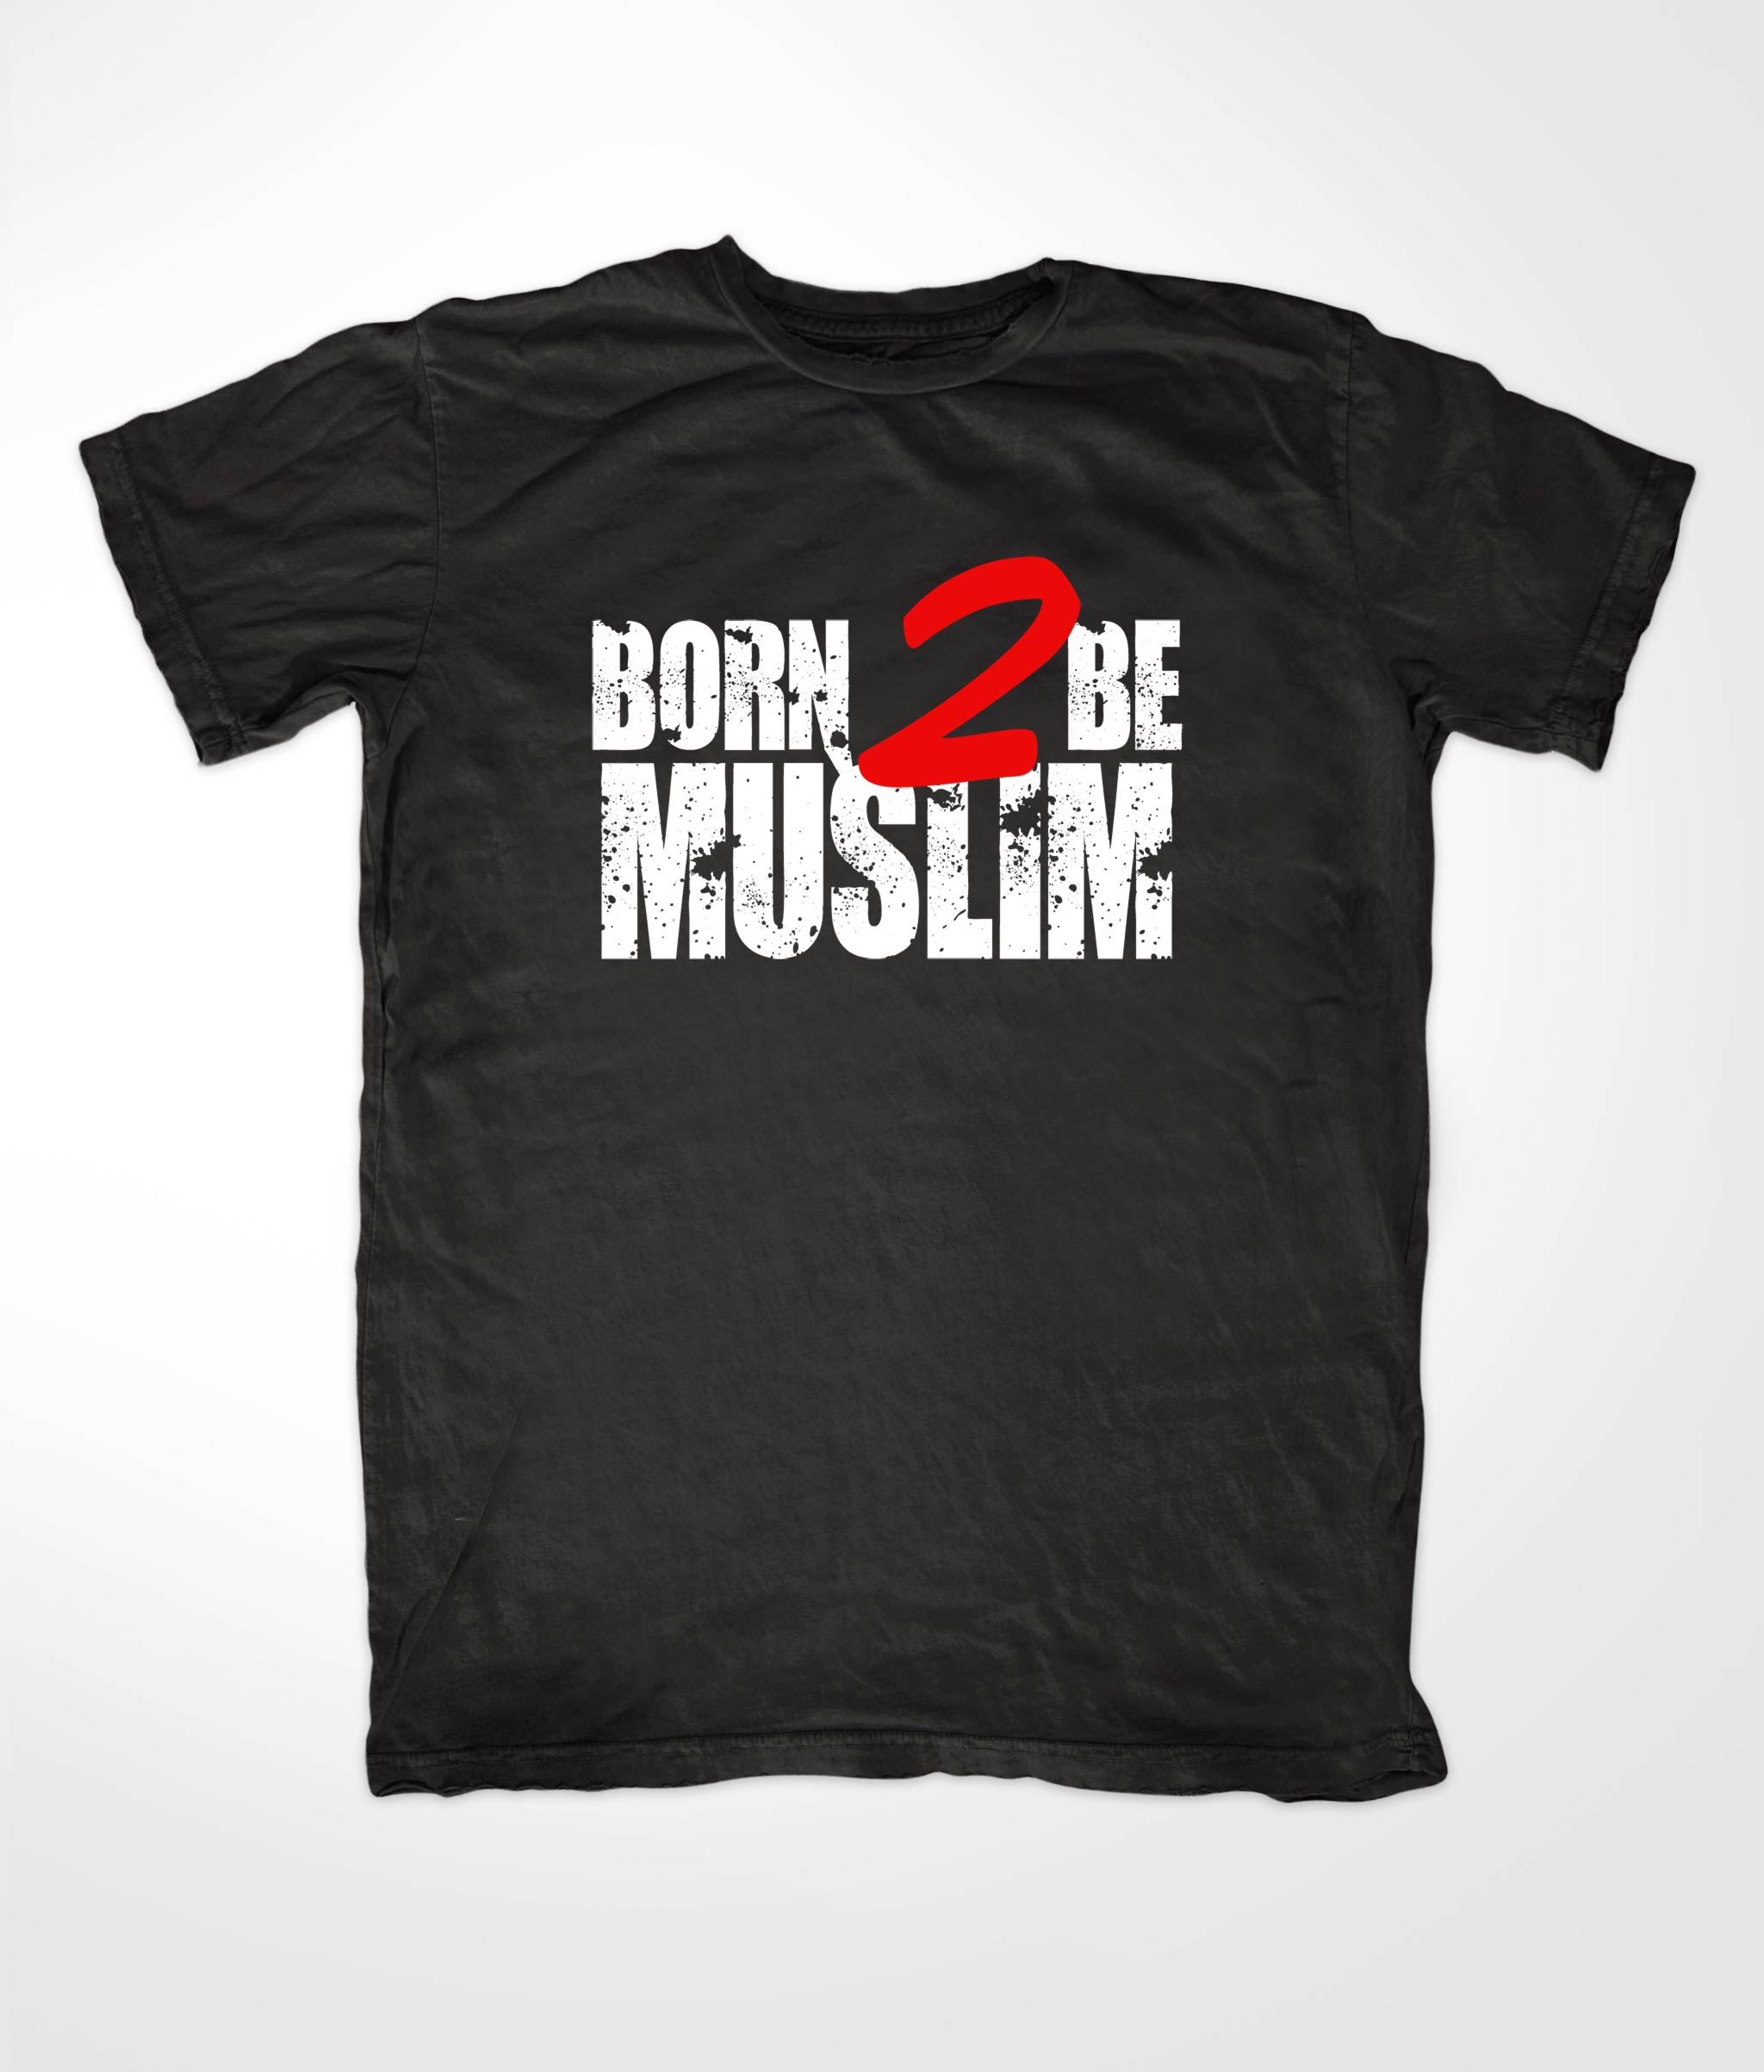 Born to Die Shirt Born 2 Die Muslim Black t